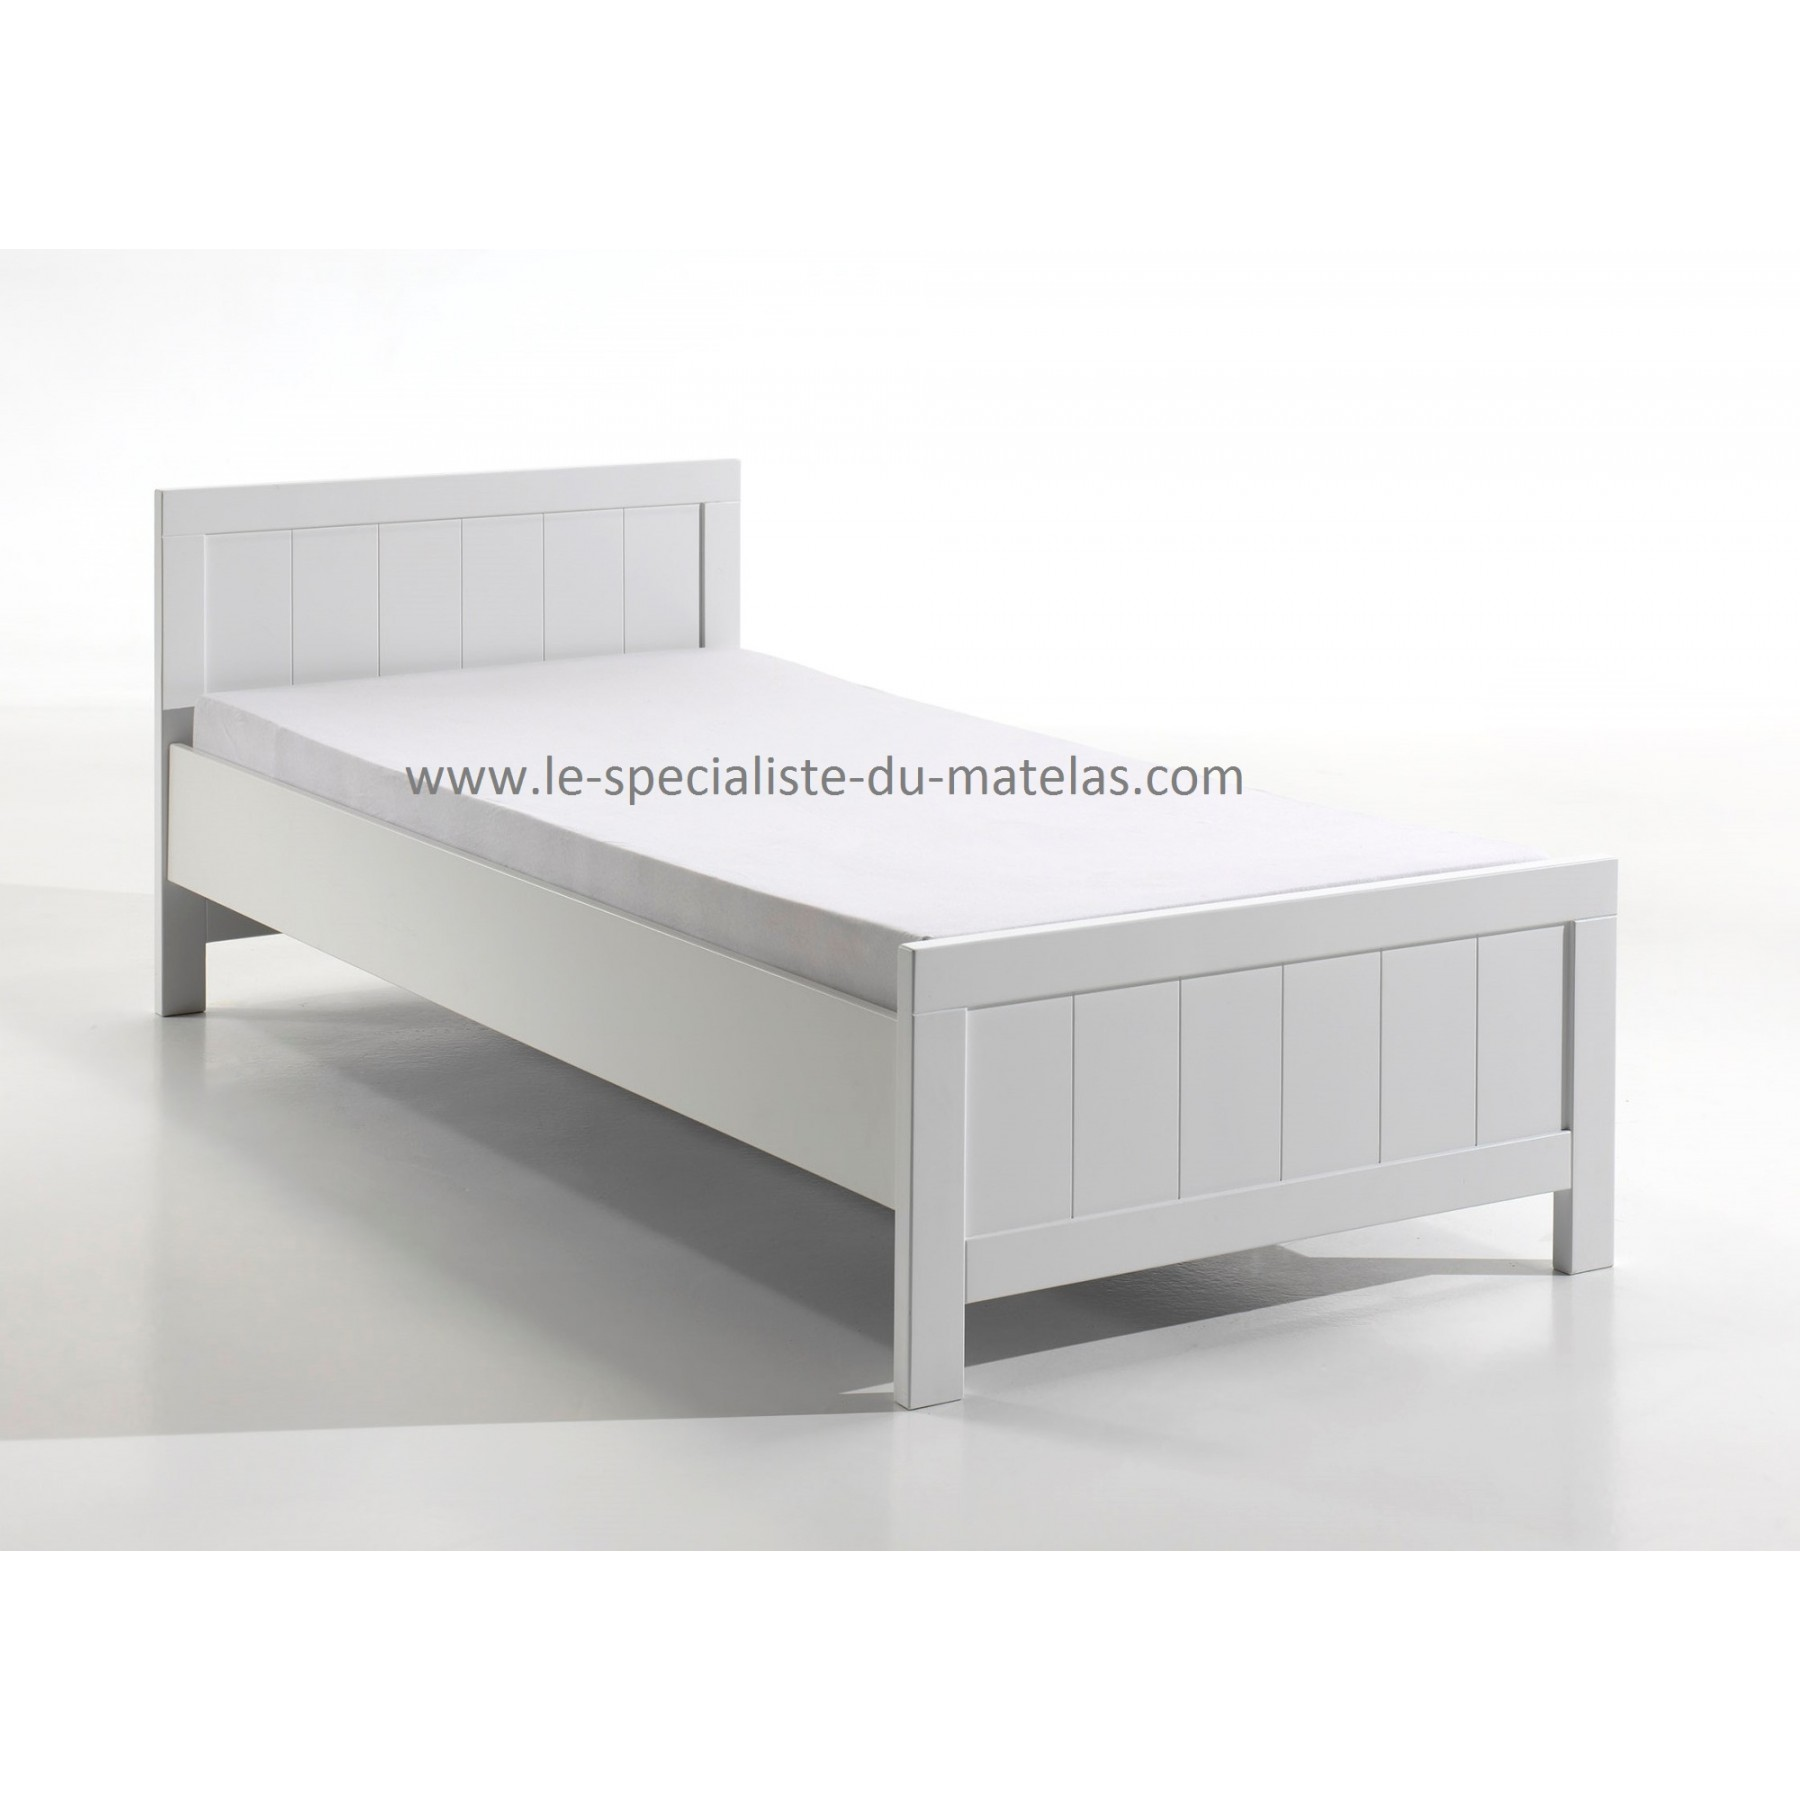 lit enfant blanc laqu le sp cialiste du matelas. Black Bedroom Furniture Sets. Home Design Ideas